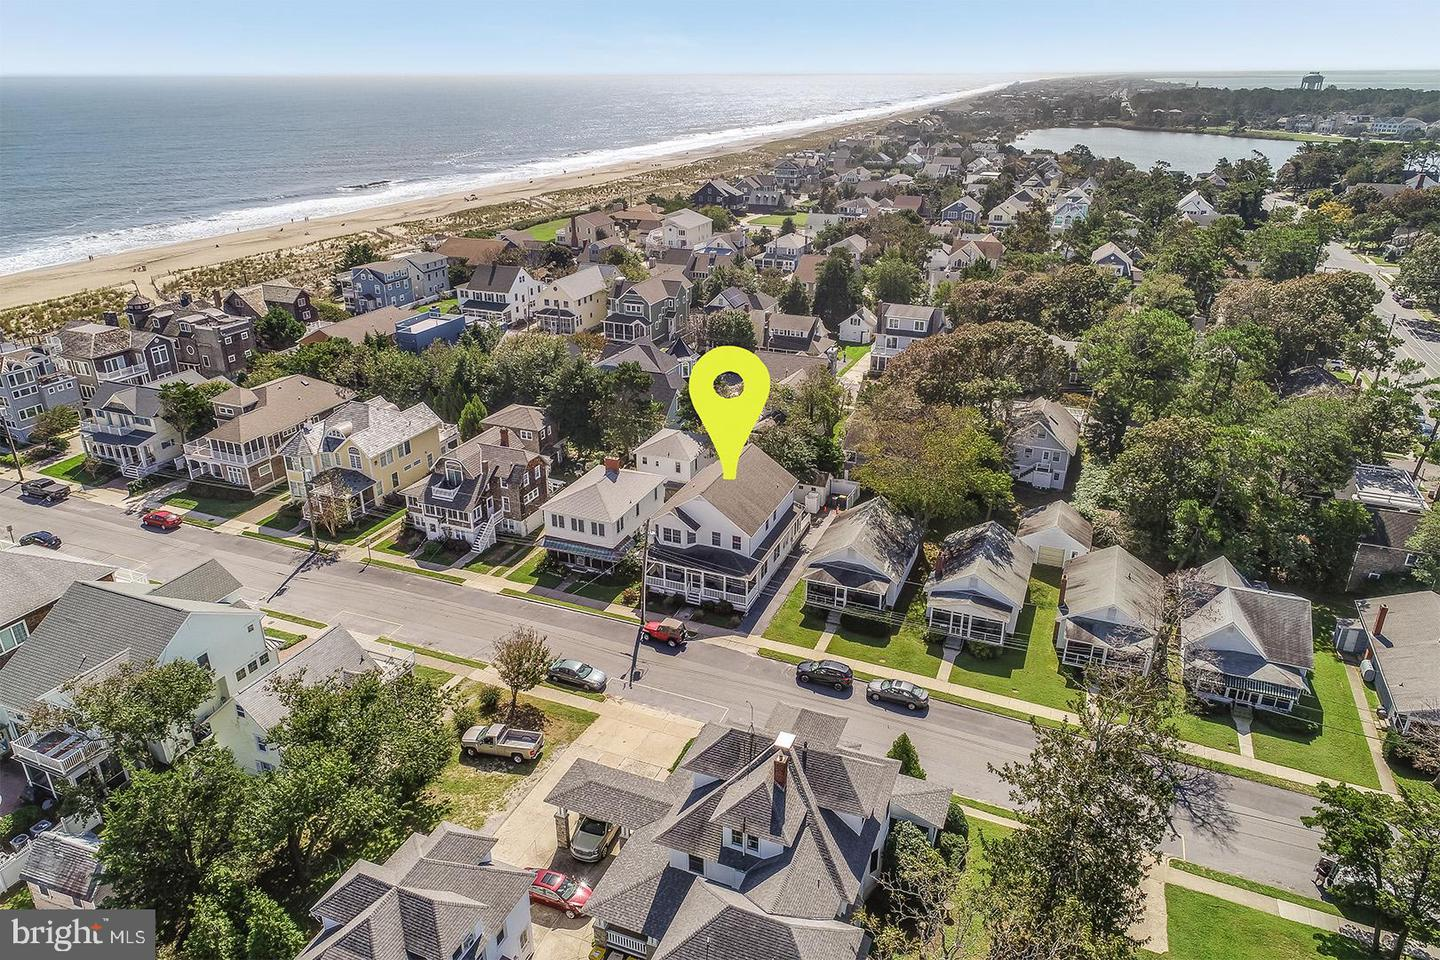 DESU139874-301711161825-2019-05-16-07-32-35 10 New Castle St | Rehoboth Beach, DE Real Estate For Sale | MLS# Desu139874  - Rehoboth Beach Real Estate - Bryce Lingo and Shaun Tull REALTORS, Rehoboth Beach, Delaware